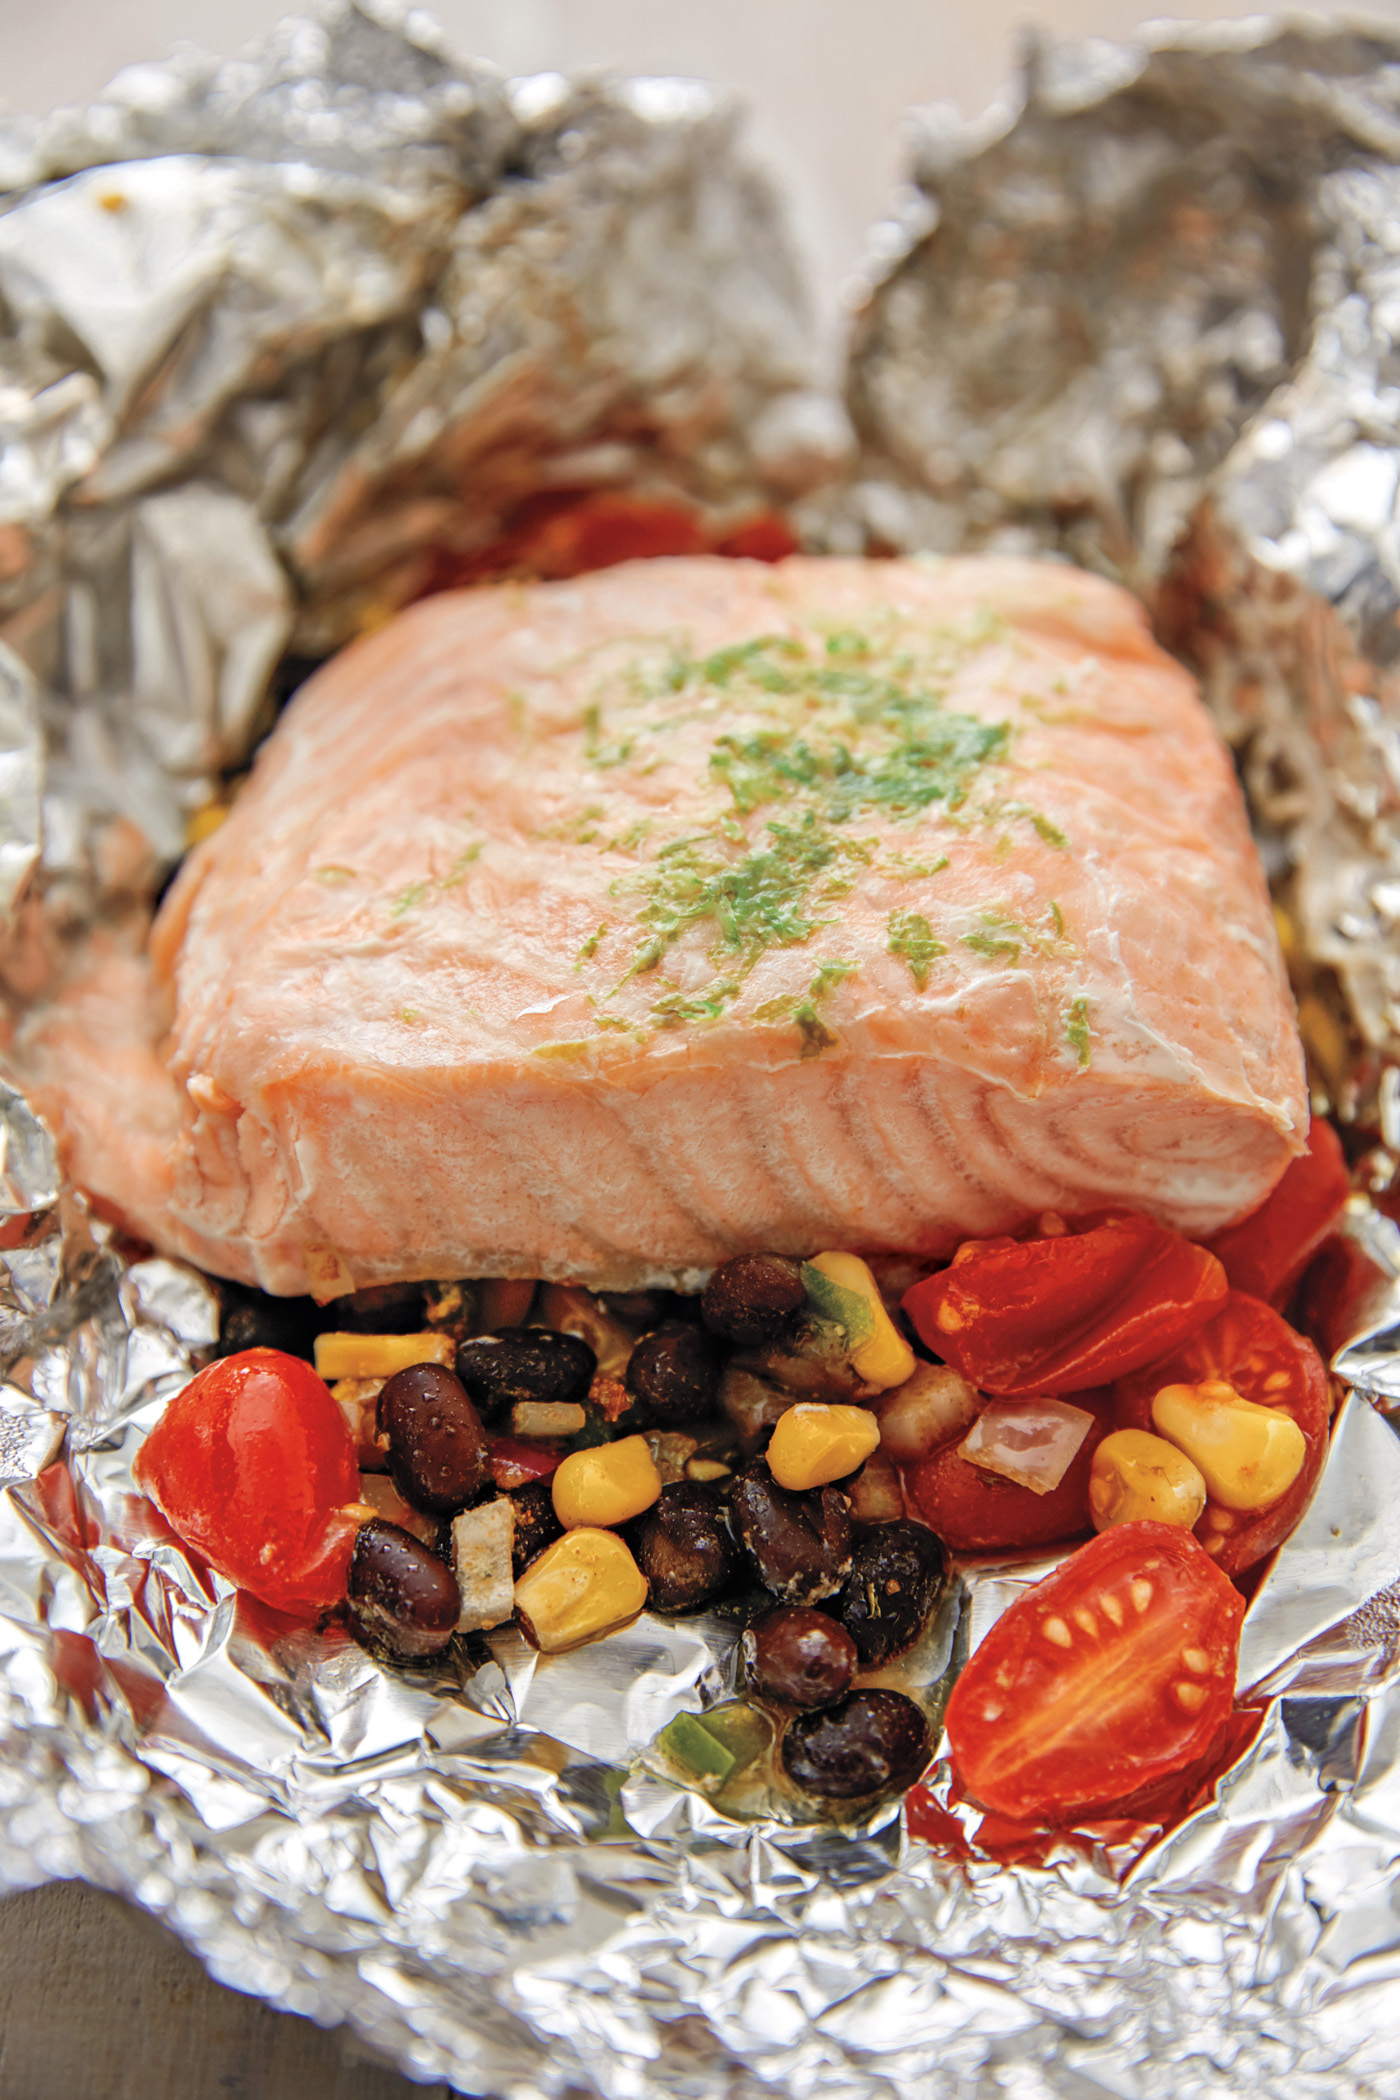 Tex-Mex Salmon in Foil, plus tips on how to cook en papillote (or how to cook in parchment) from The Dinner Plan Cookbook by Kathy Brennan and Caroline Campion | Cool Mom Eats (Photo by Maura McEvoy)